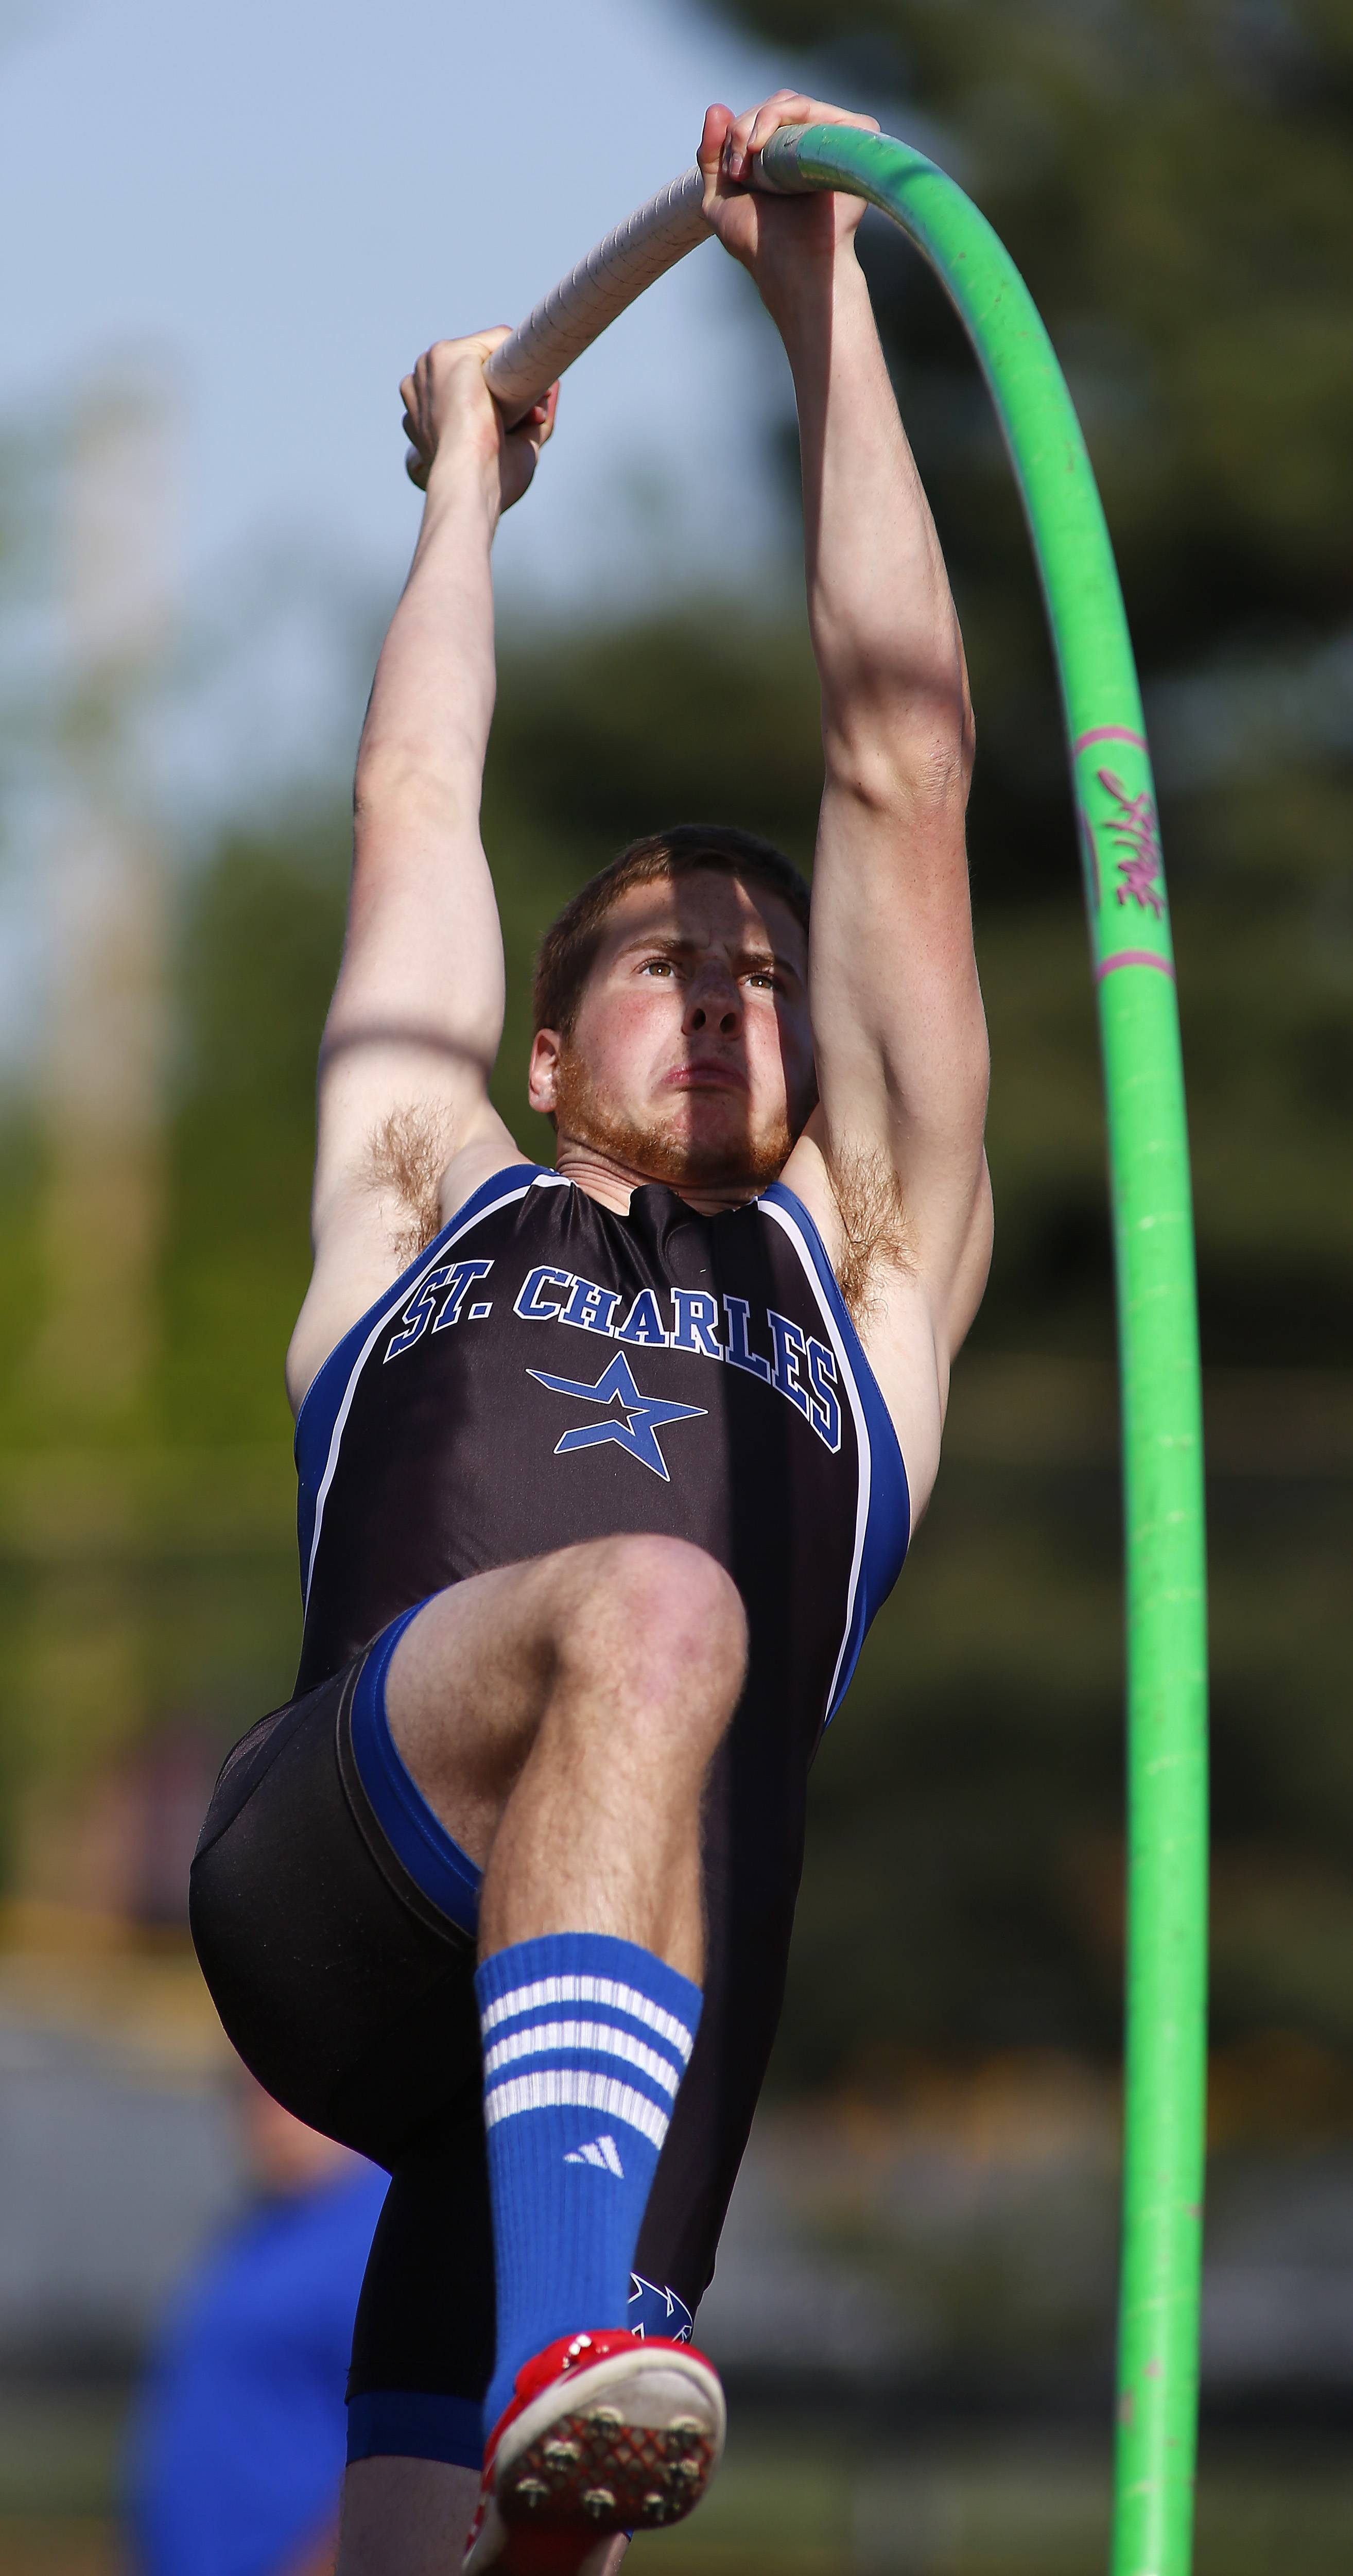 St. Charles North's Drew Egger competes in the pole vault during the Class 3A Bartlett boys track sectional Friday at Memorial Field in Elgin.